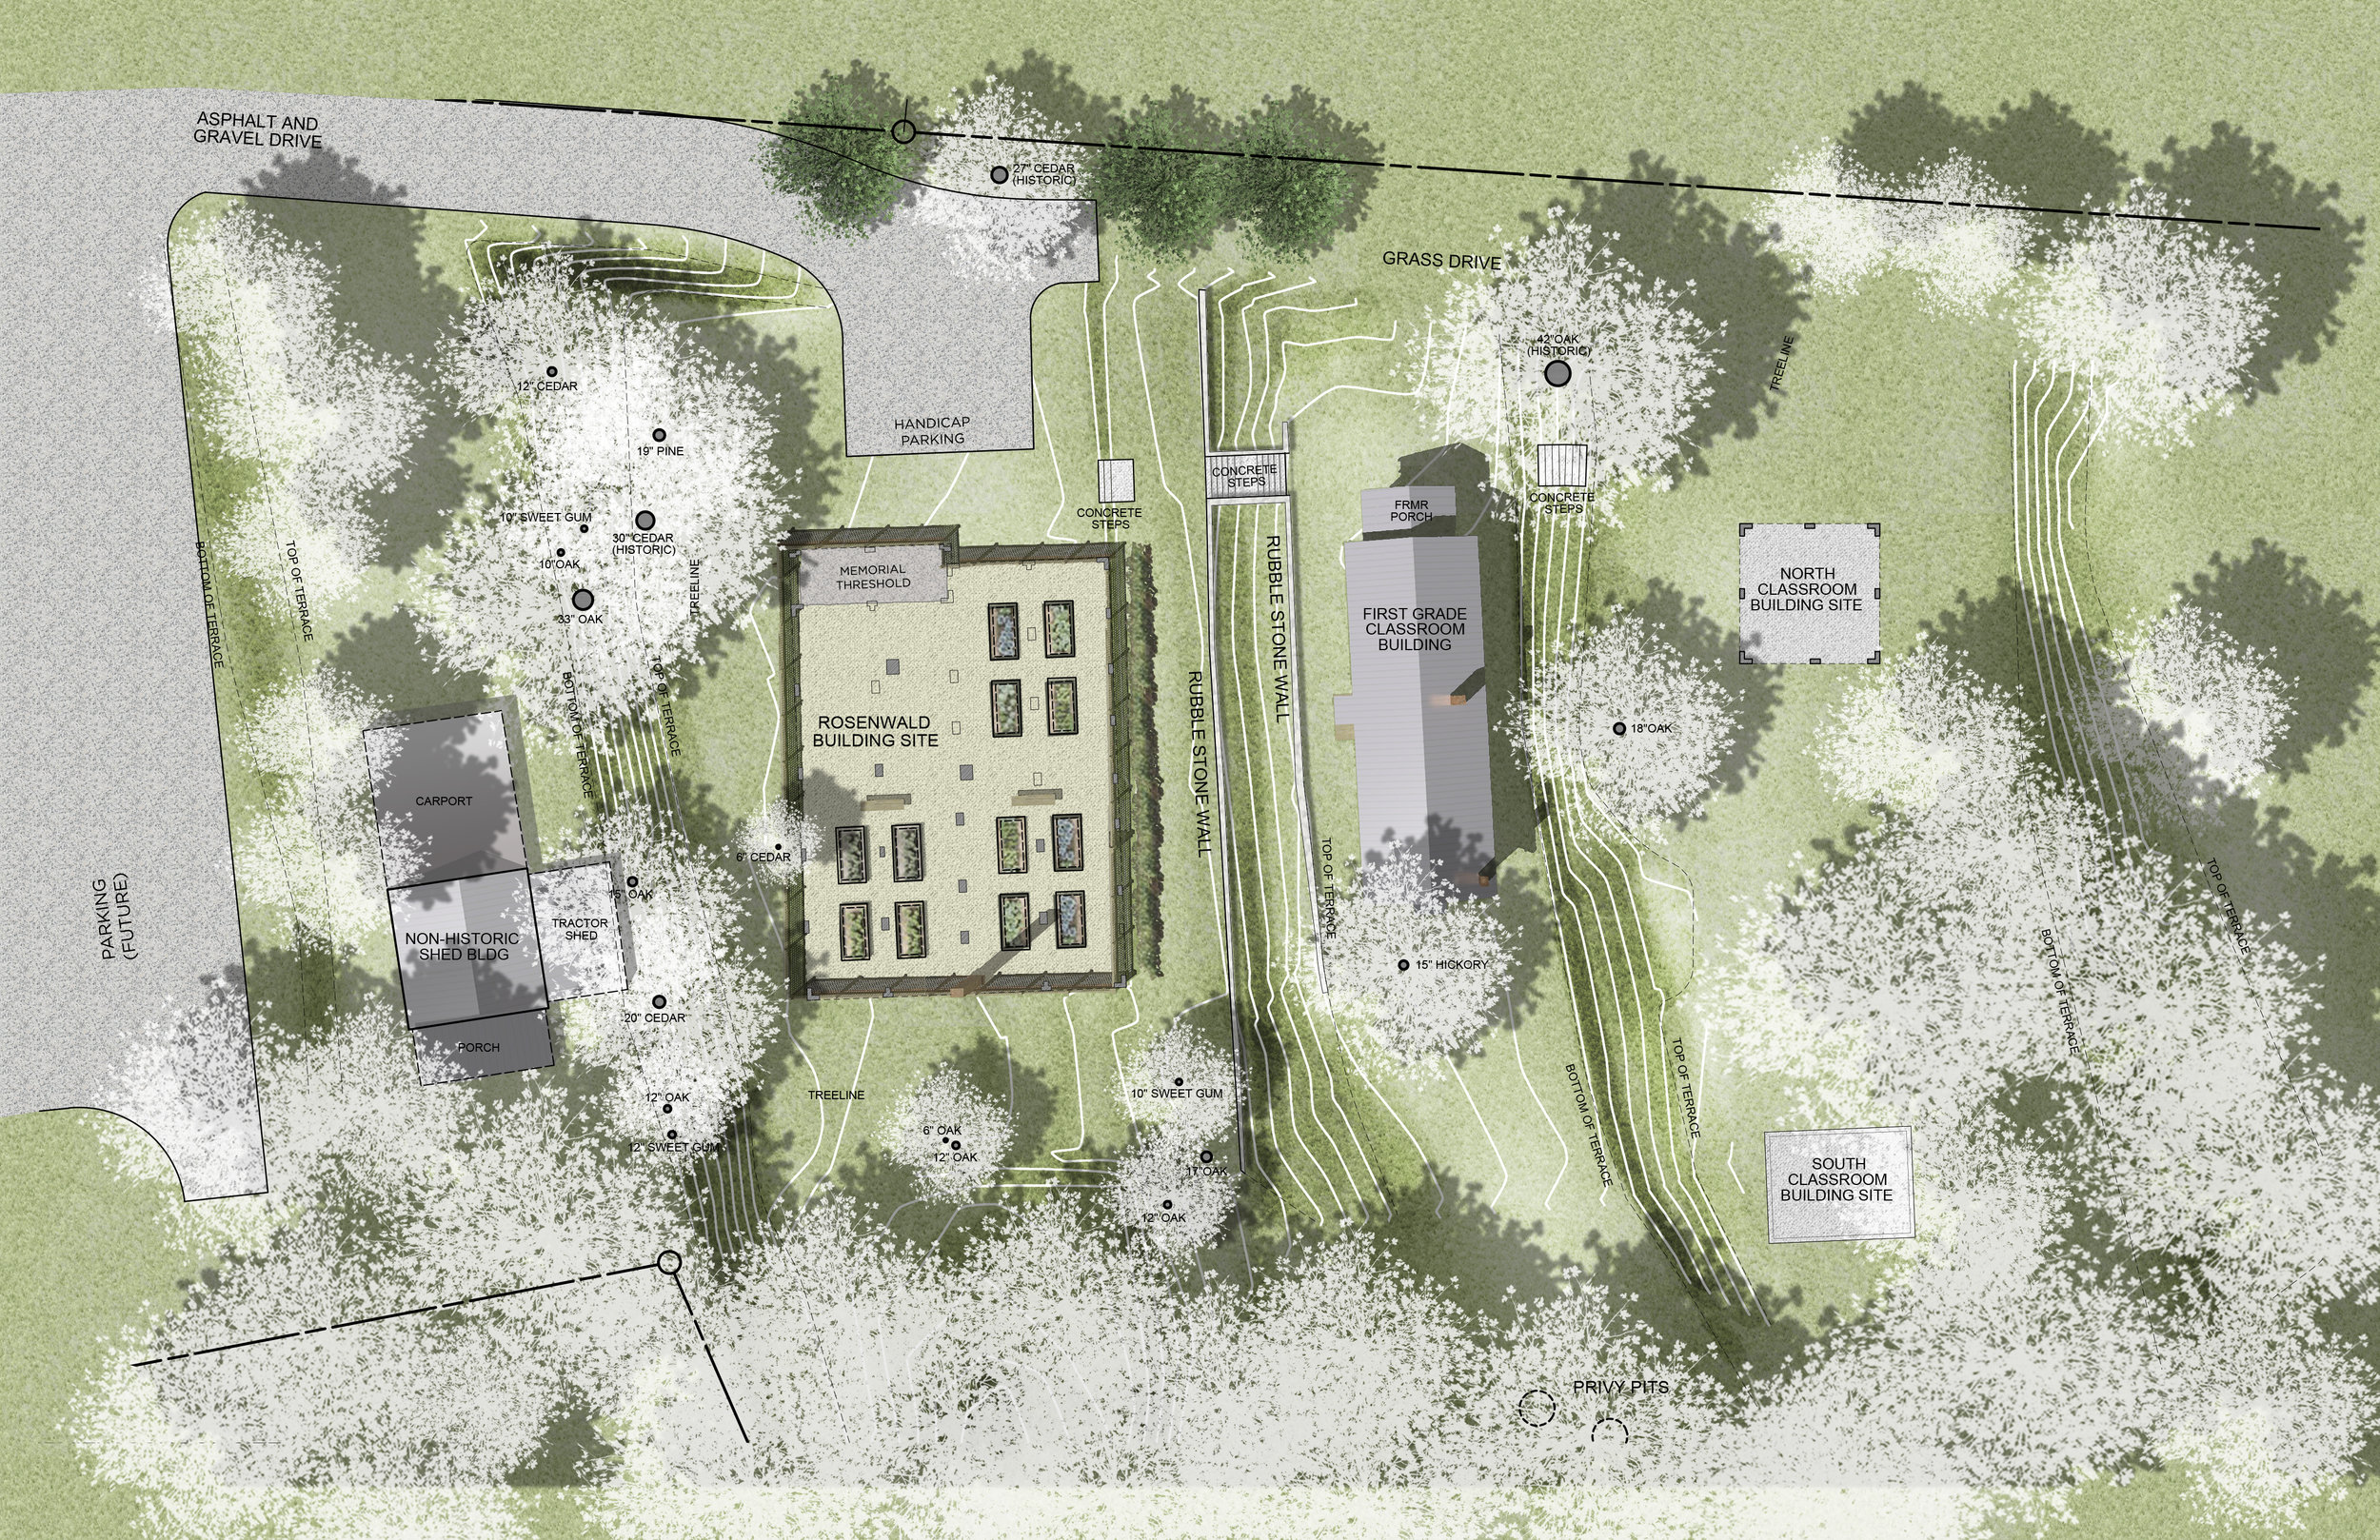 FAIRVIEW SCHOOL-Plan for Rendering-PK100.jpg